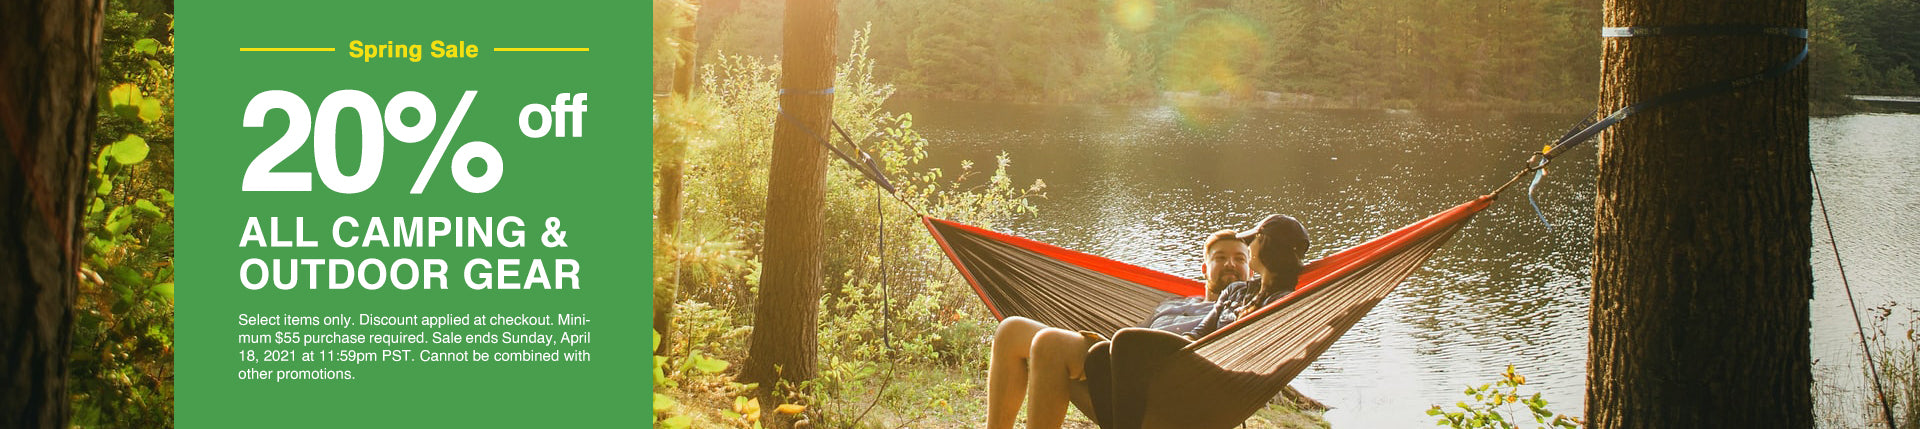 a spring sale banner reading: 20% off all camping and outdoor gear